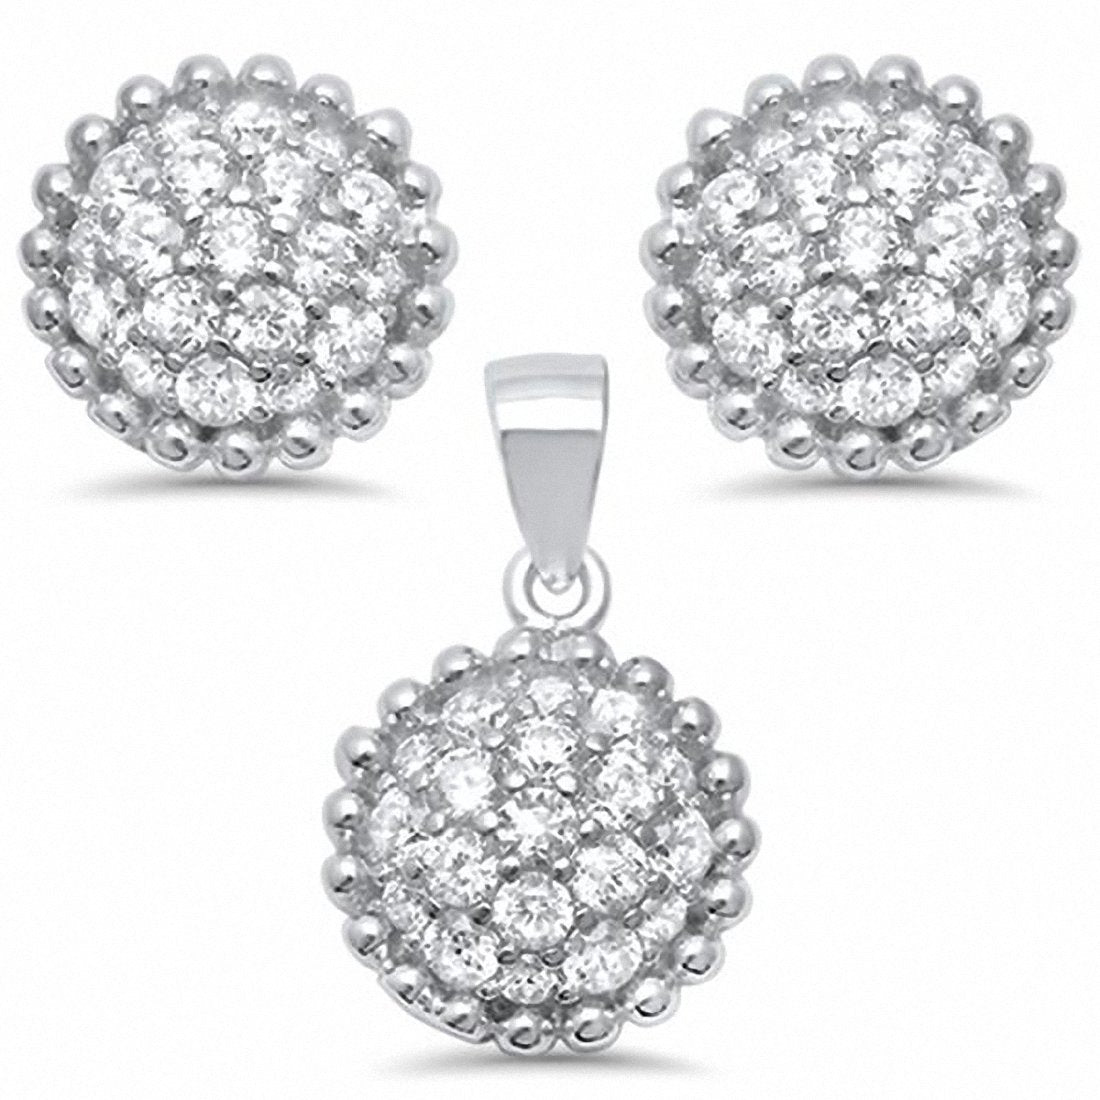 Fashion Jewelry Set Round Cubic Zirconia 925 Sterling Silver Choose Color